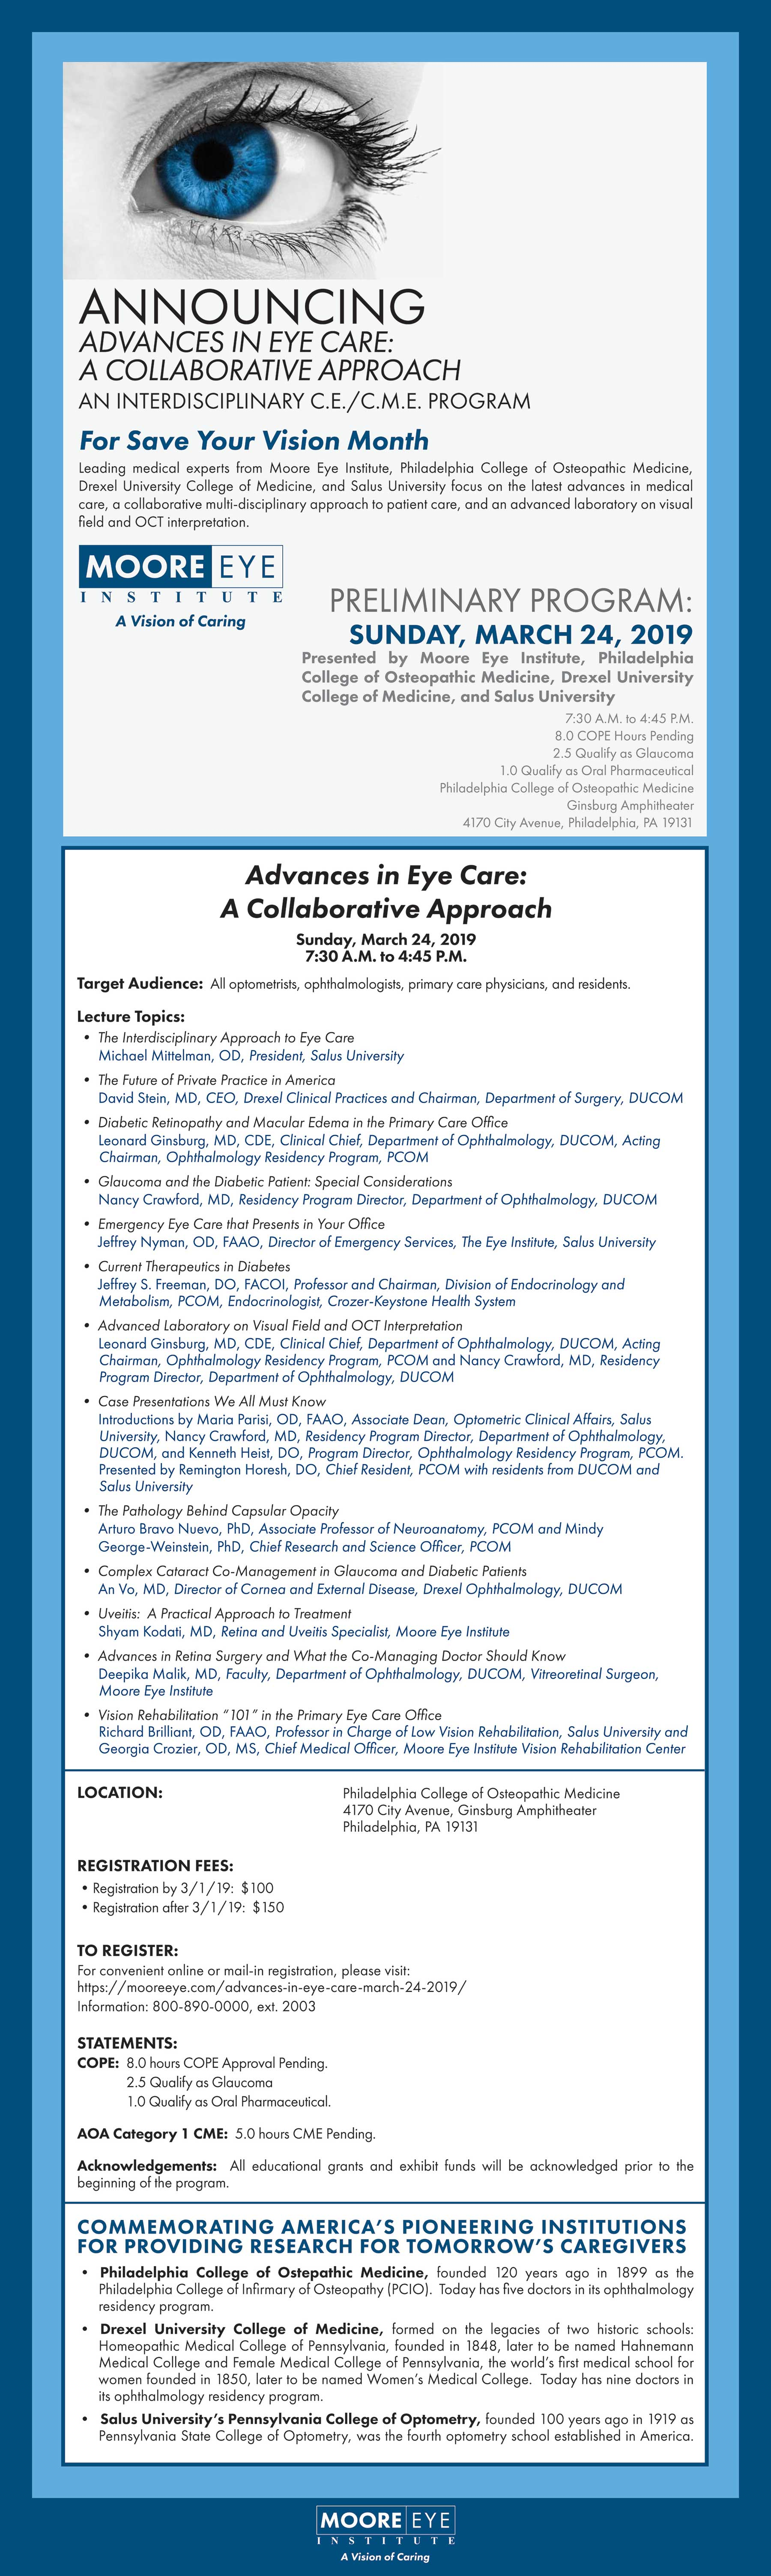 Advances in Eye Care: A Collaborative Approach